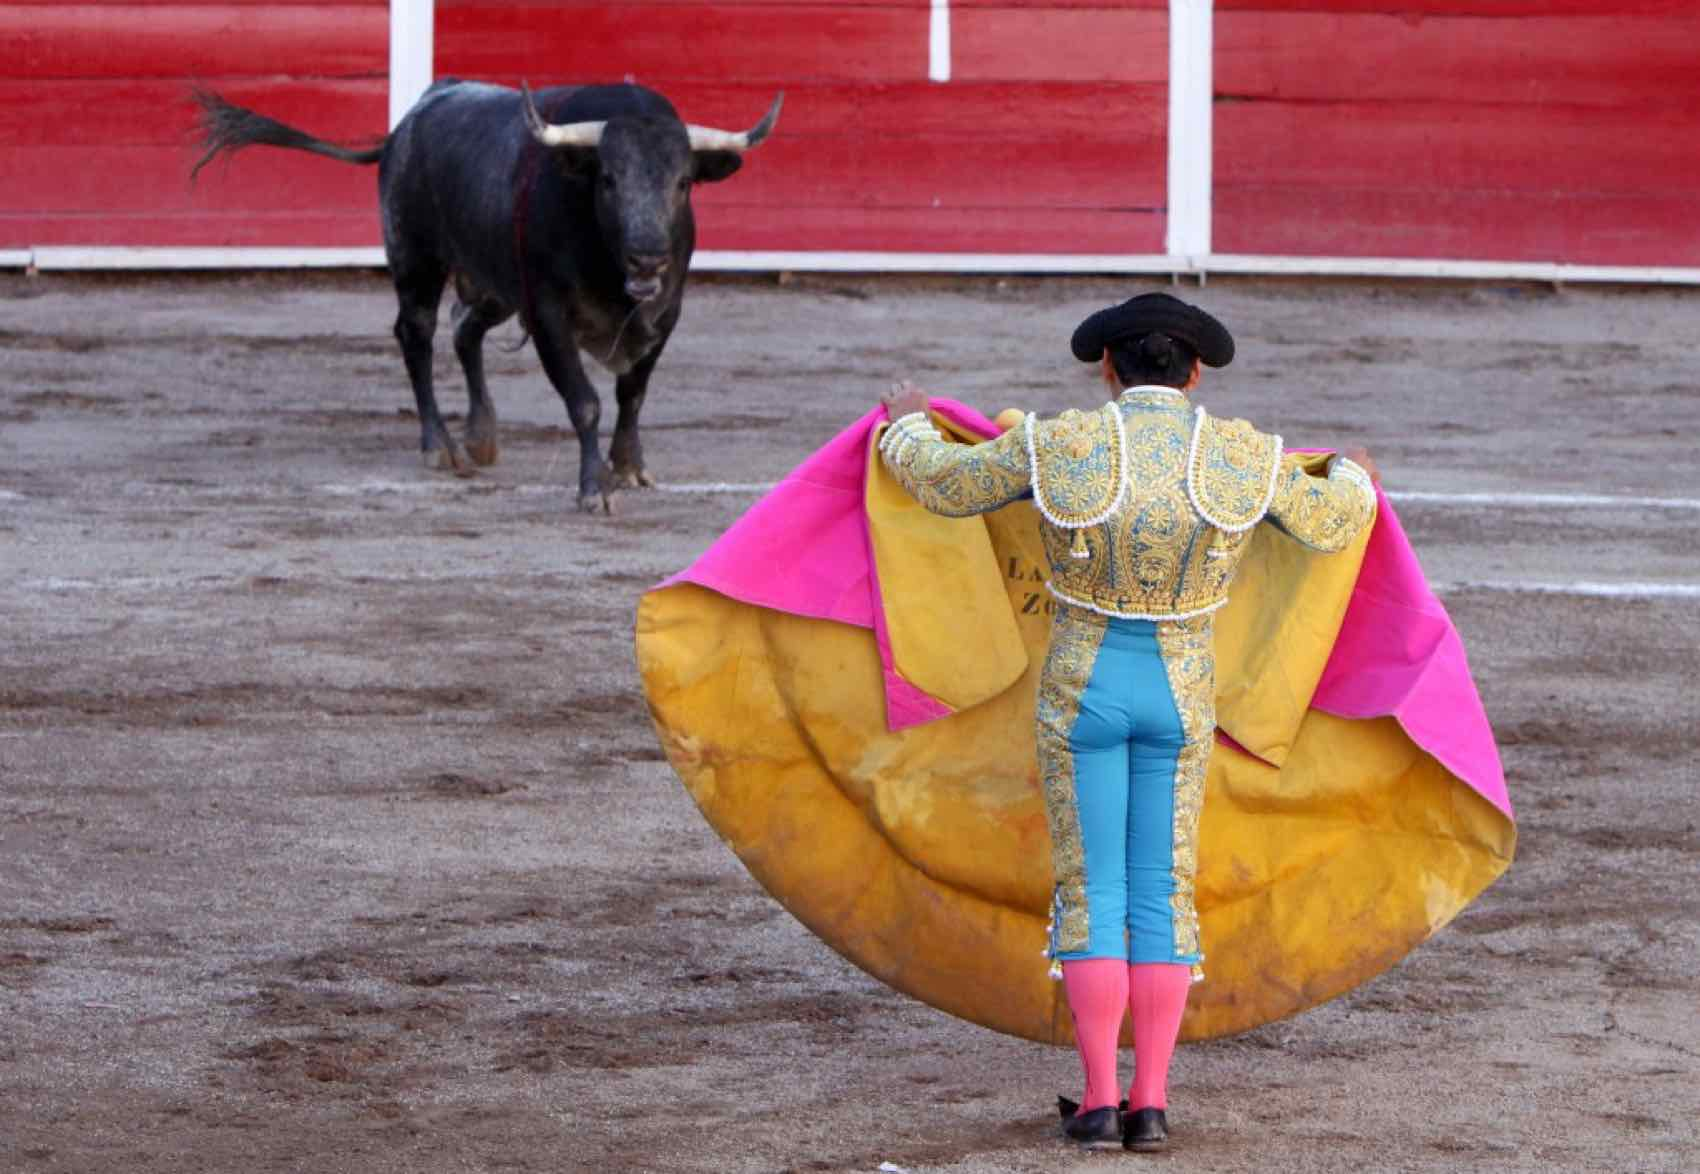 Old tradition: Barcelona banned bullfighting, but Madrid and Andalusia continue to host bullfighting throughout the summer.